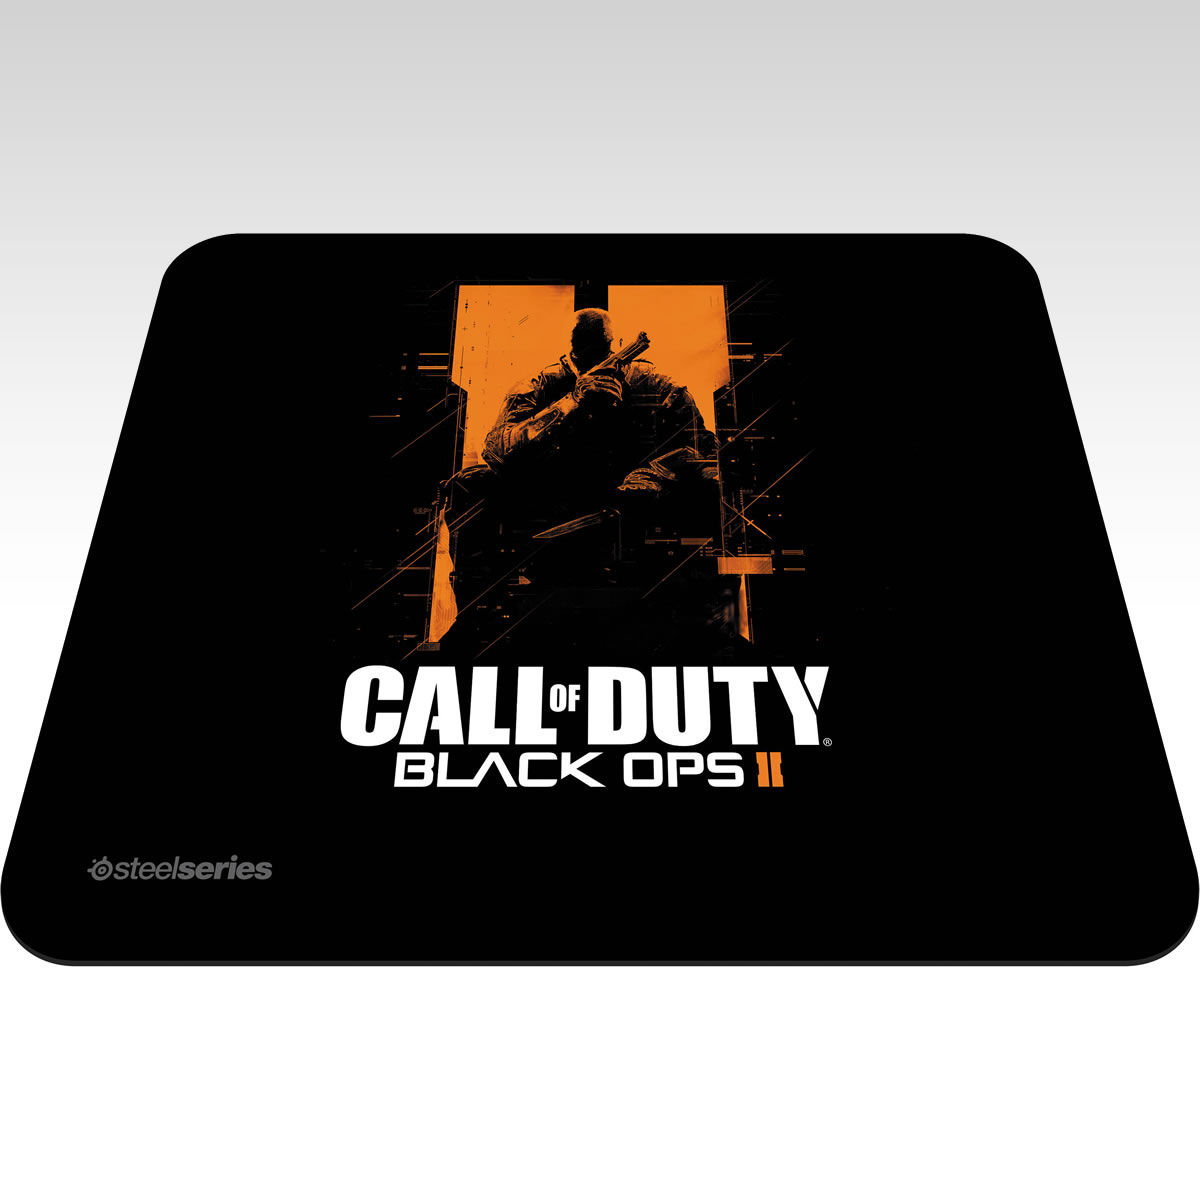 STEELSERIES - SURFACE QcK CALL OF DUTY BLACK OPS II ORANGE WOLF EDITION 67264 (PC)